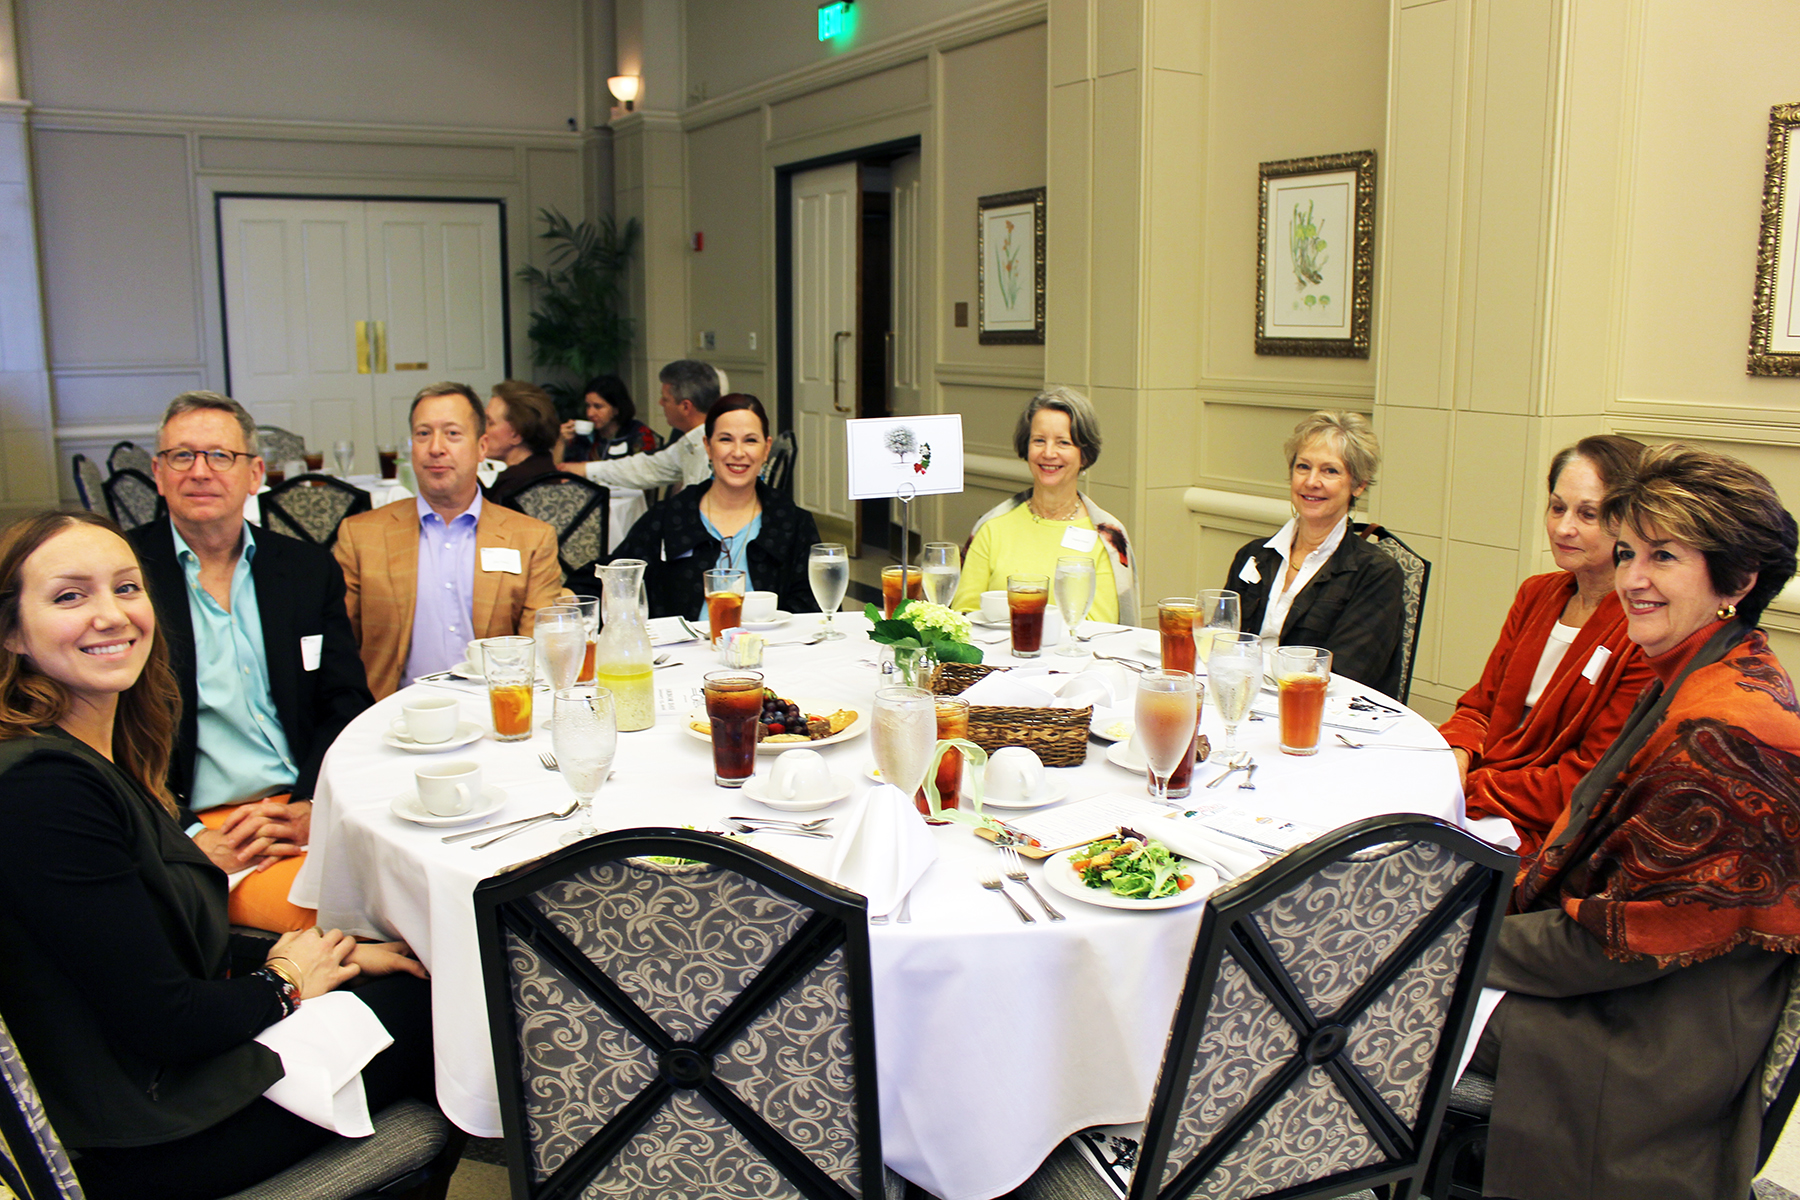 Baton Rouge Green S Arbor Day Luncheon Inregister